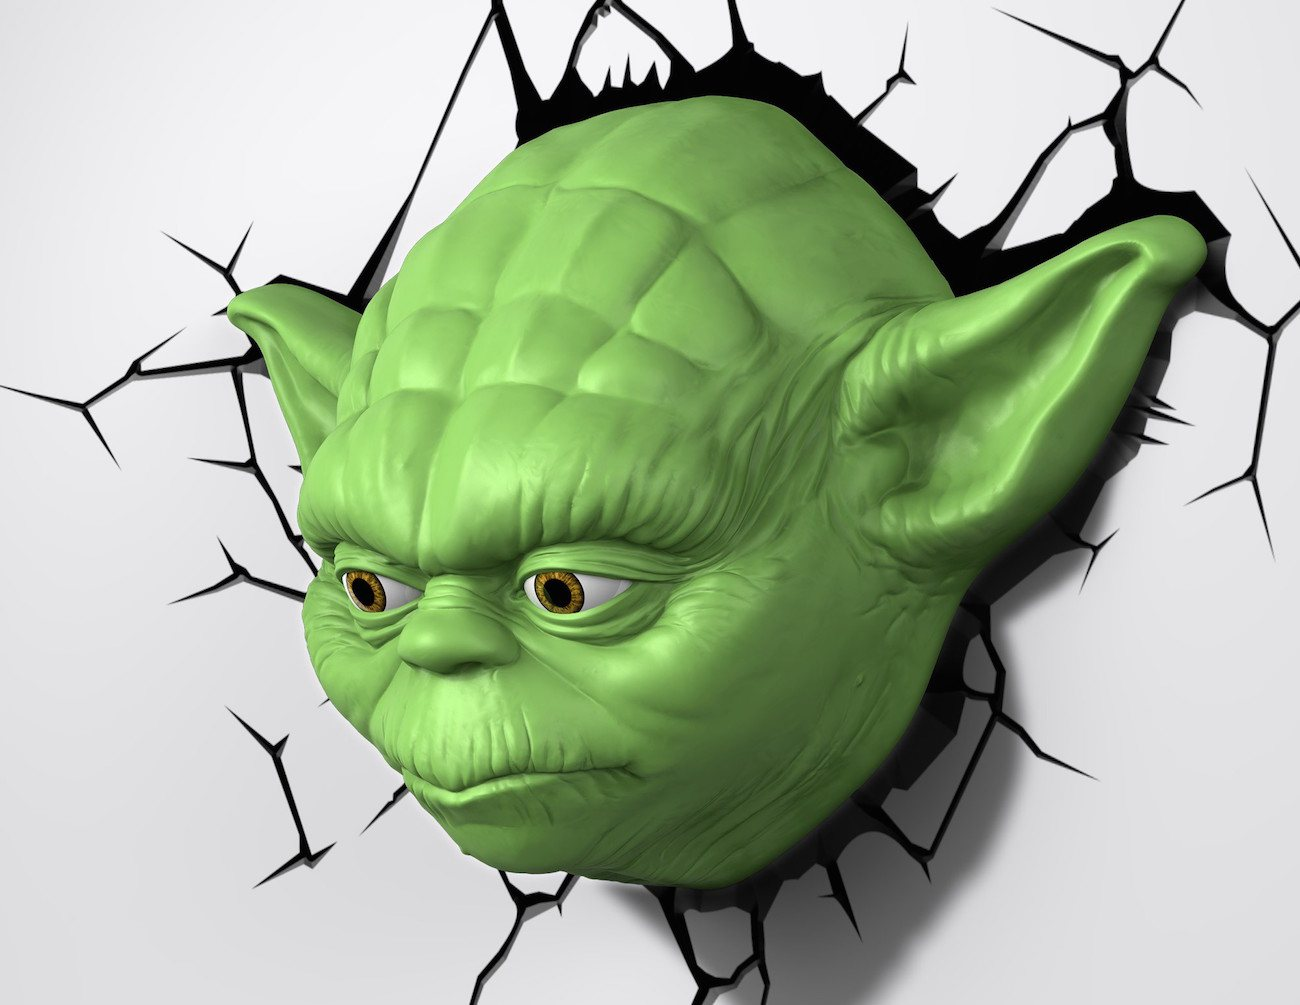 star wars yoda cartoon www pixshark com images galleries with a bite Homepage Free Clip Art Web free clip art cd rom